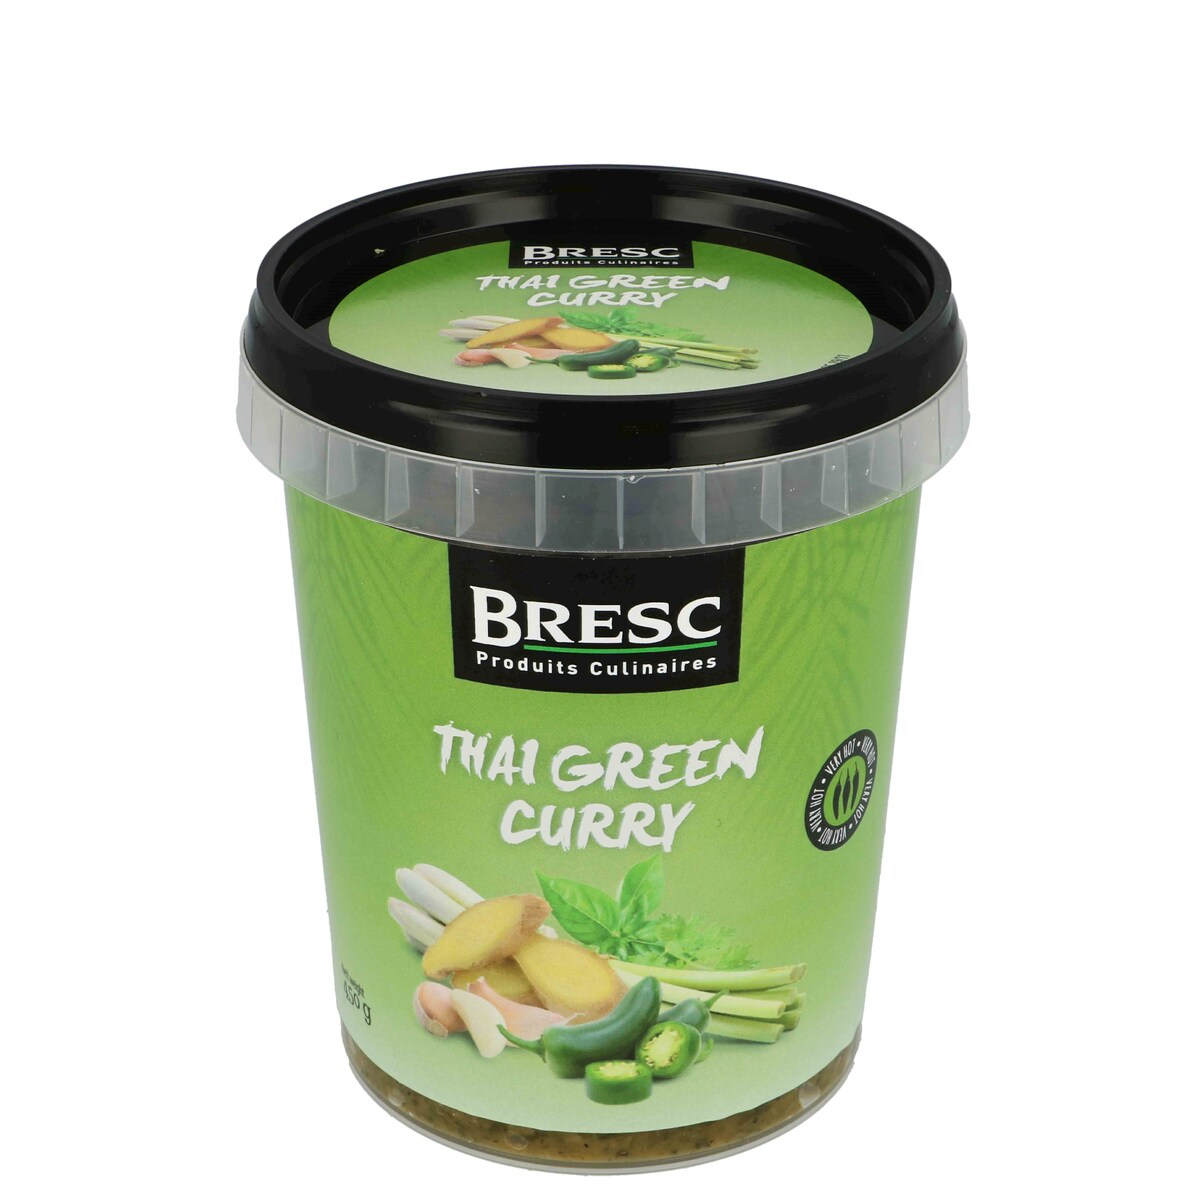 Thai green curry 450g